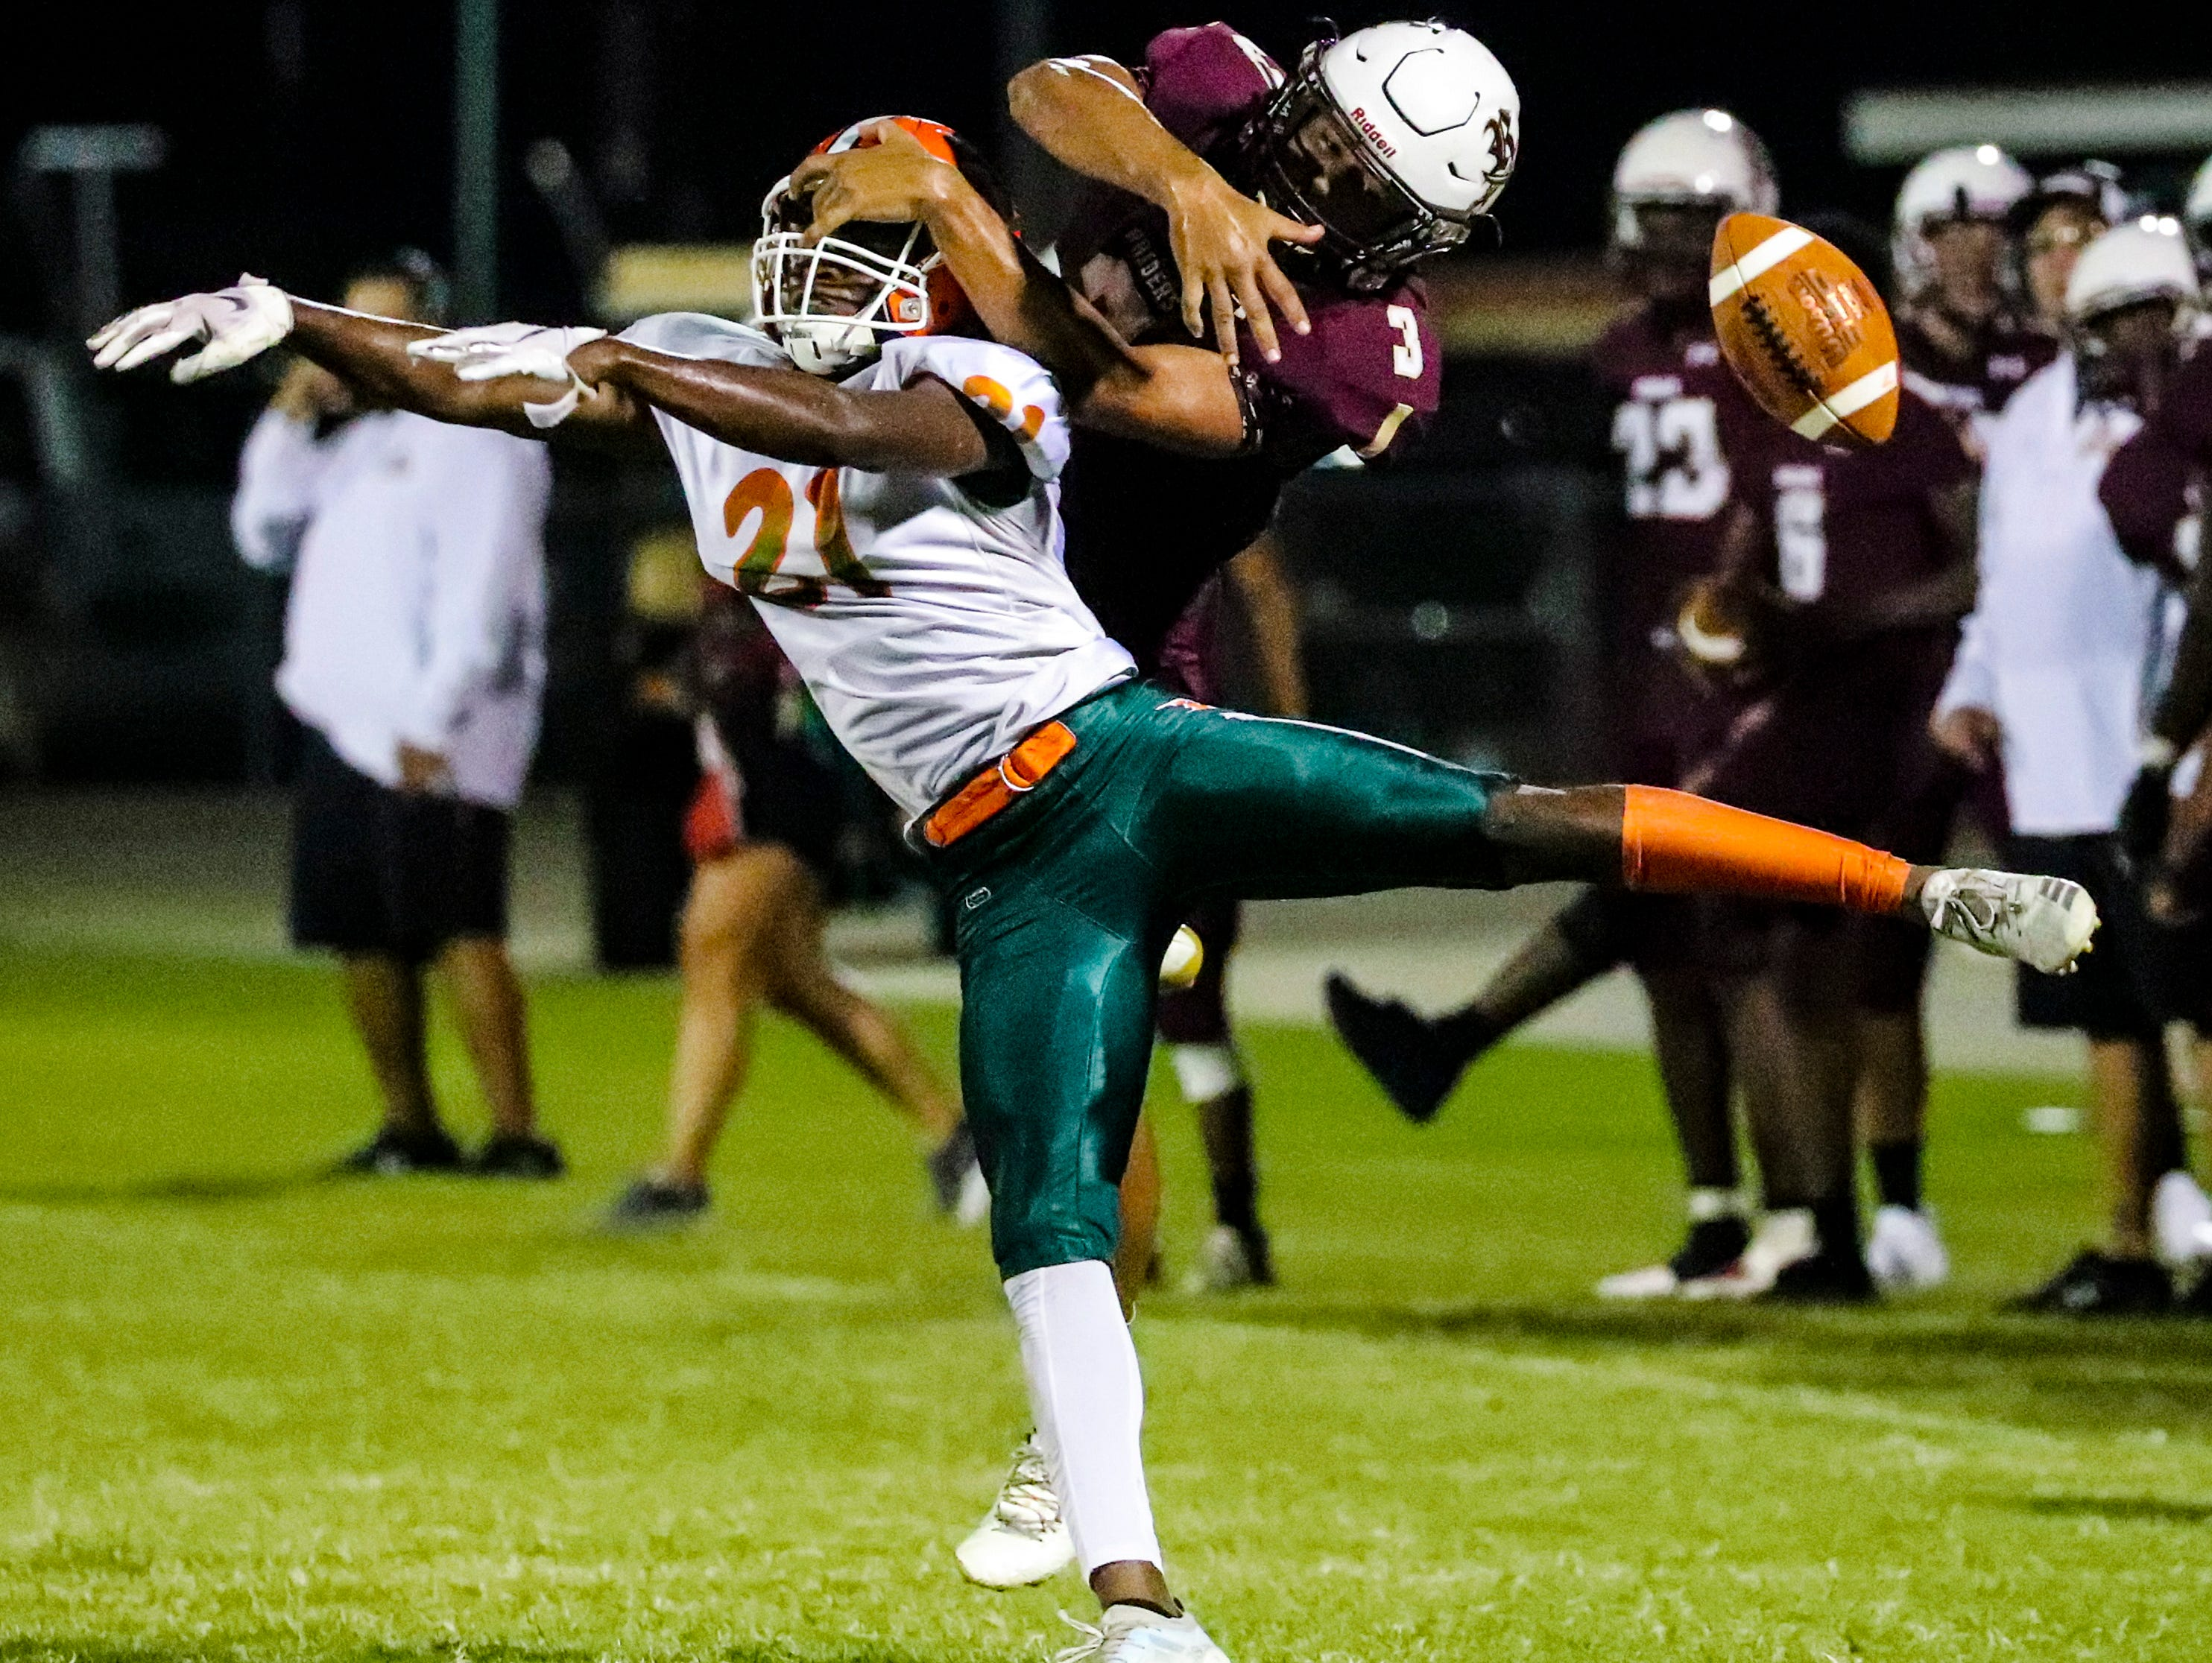 Riverdale's Jaylin Cochran can't make the catch as Dunbar's Tyrel Kennedy breaks up the pass. Images from the Dunbar at Riverdale high school football game, Friday, September 8th,2018.